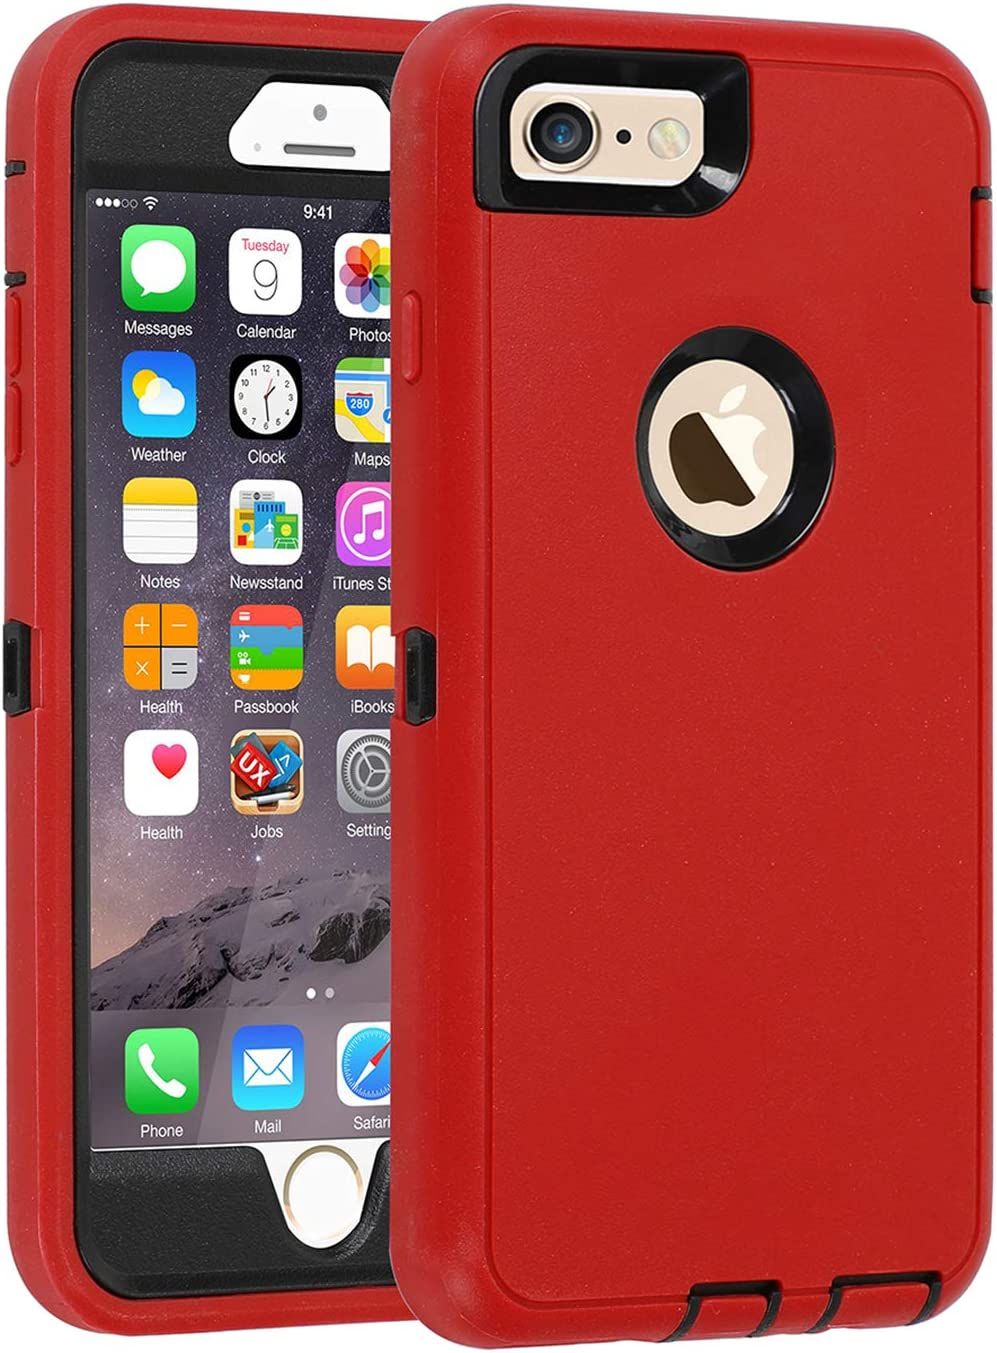 Co-Goldguard Case for iPhone 6/6s,Heavy Duty 3 in 1 Built-in Screen Protector Durable Cover Dust-Proof Shockproof Drop-Proof Scratch-Resistant Shell for Apple iPhone 6/6s 4.7 inch,Red&Black